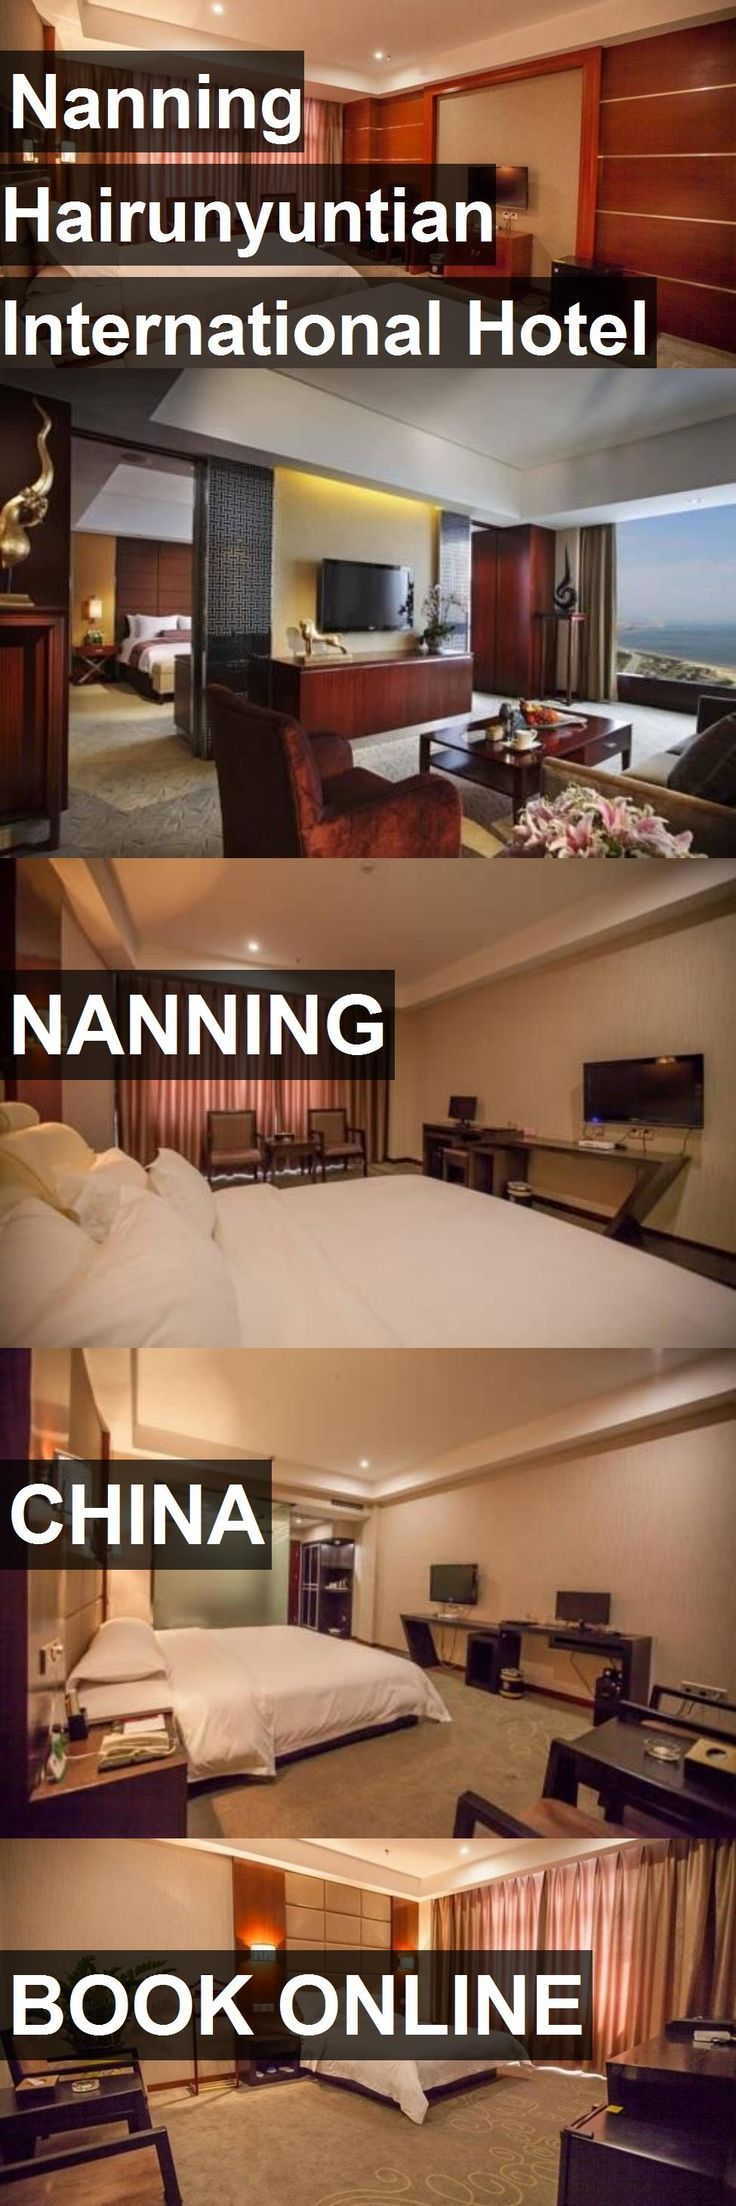 Nanning Hairunyuntian International Hotel in Nanning, China. For more information, photos, reviews and best prices please follow the link. #China #Nanning #travel #vacation #hotel